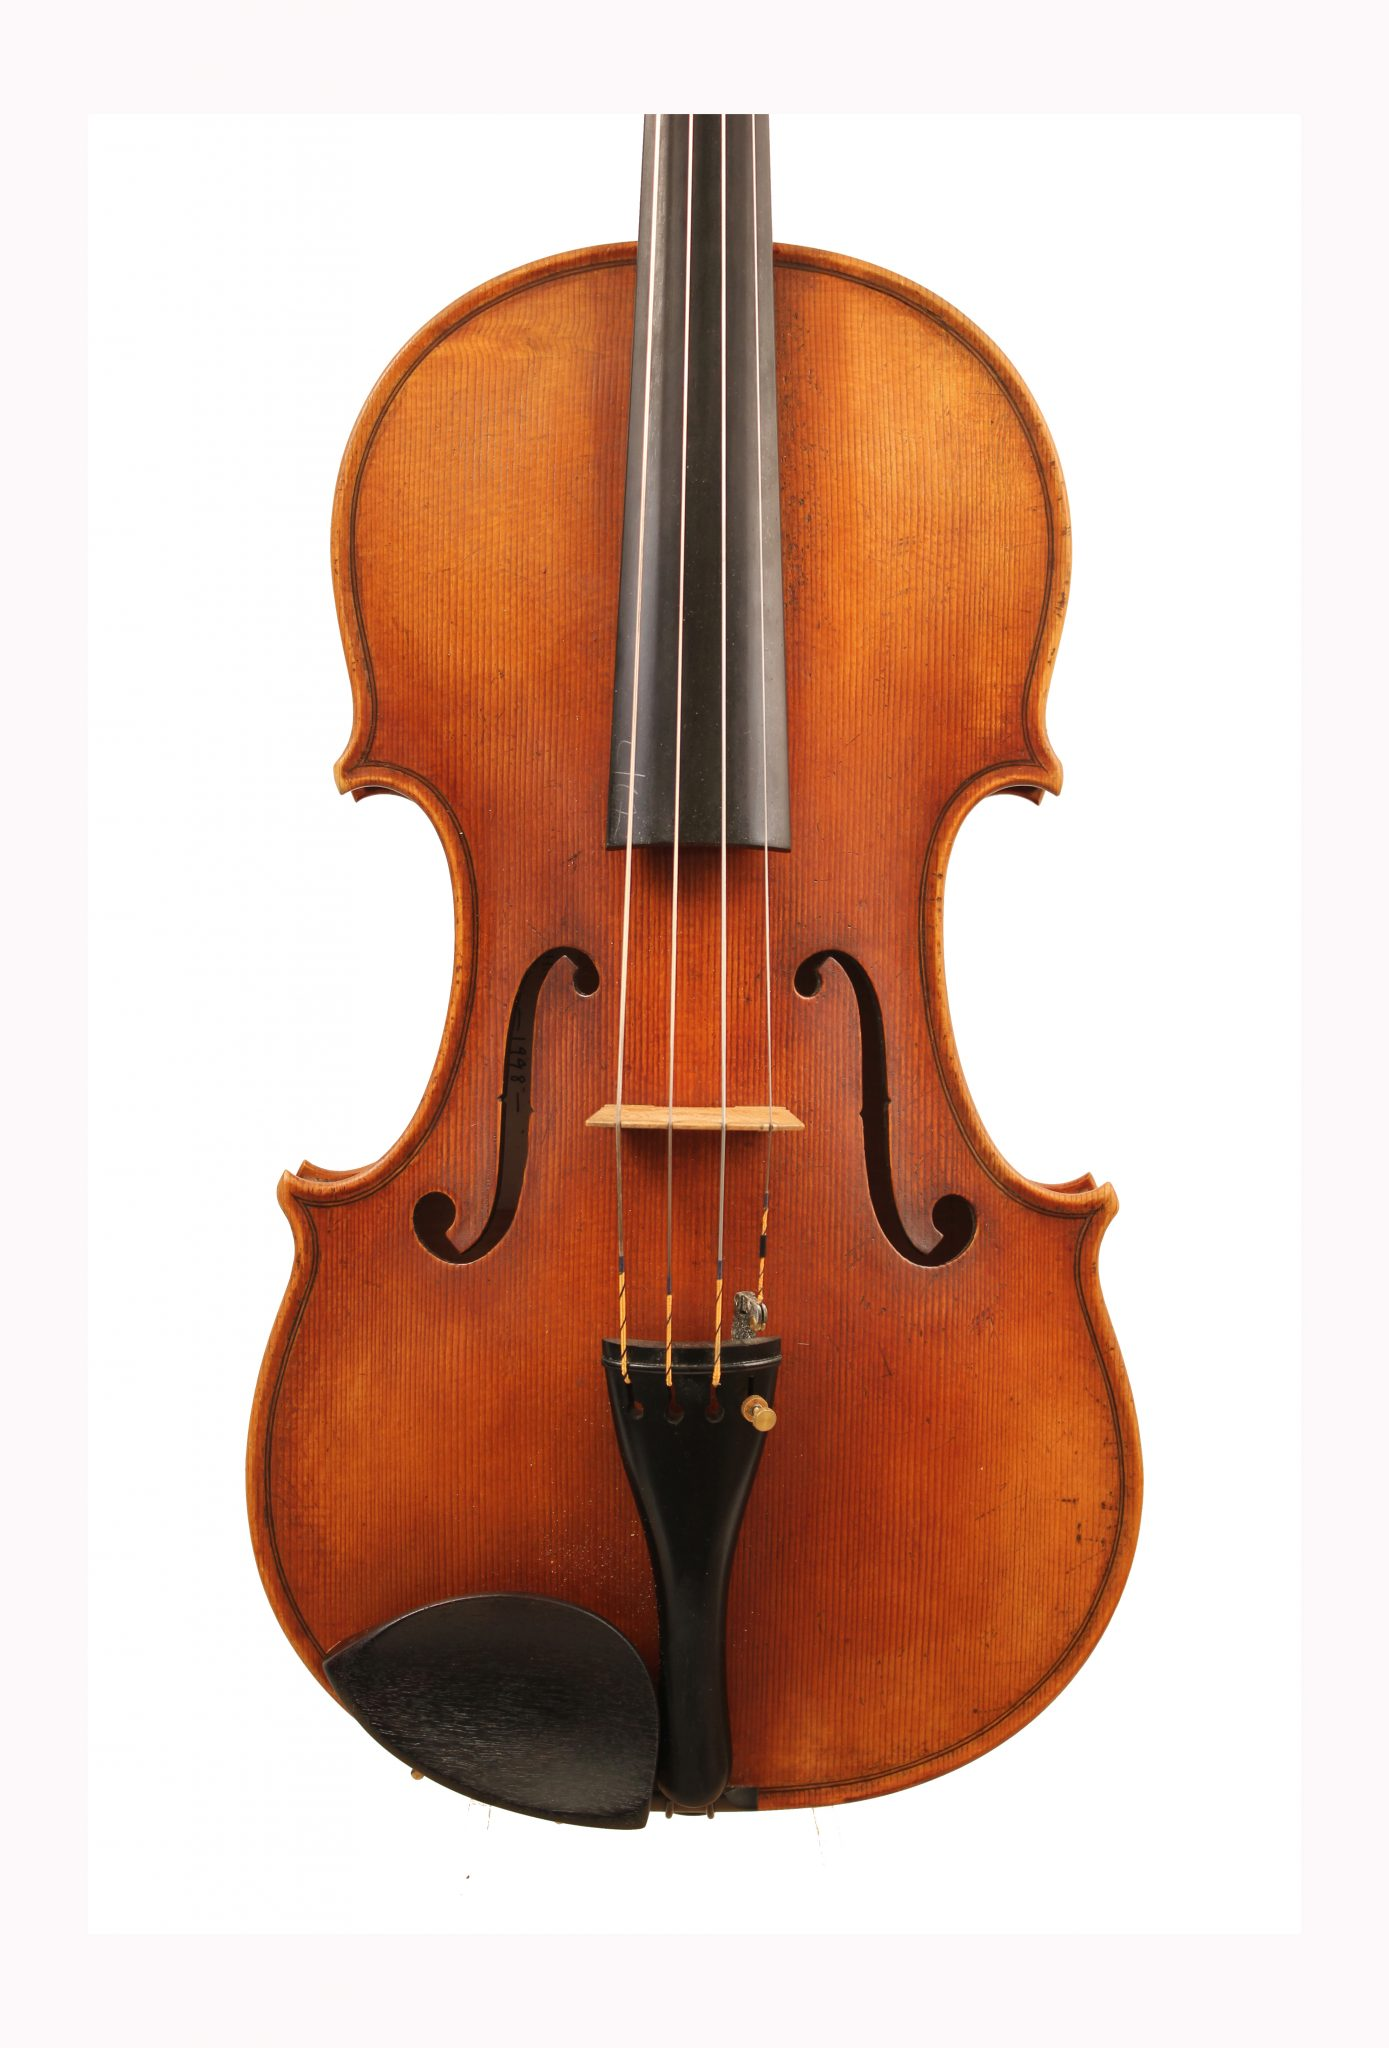 Viola by John Dilworth 1998 for sale at Bridgewood and Neitzert London